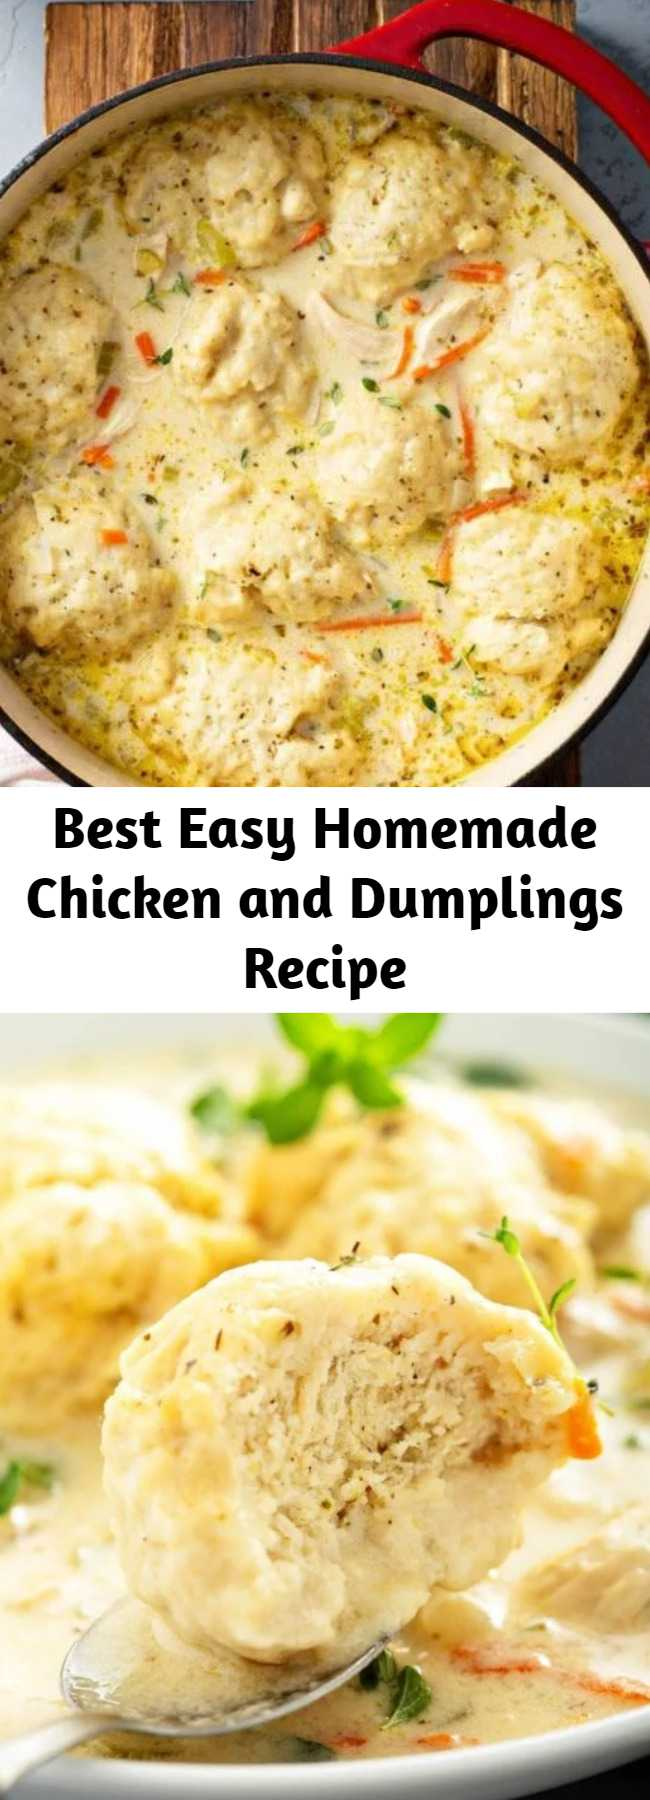 Best Easy Homemade Chicken and Dumplings Recipe - This easy recipe for my family's favorite creamy Homemade Chicken and Dumplings is loaded with big fluffy dumplings that are made from scratch in just minutes! #ChickenAndDumplings #Dumplings #ComfortFood #Chicken #ChickenSoup #Soup #Dumplings #SouthernFood